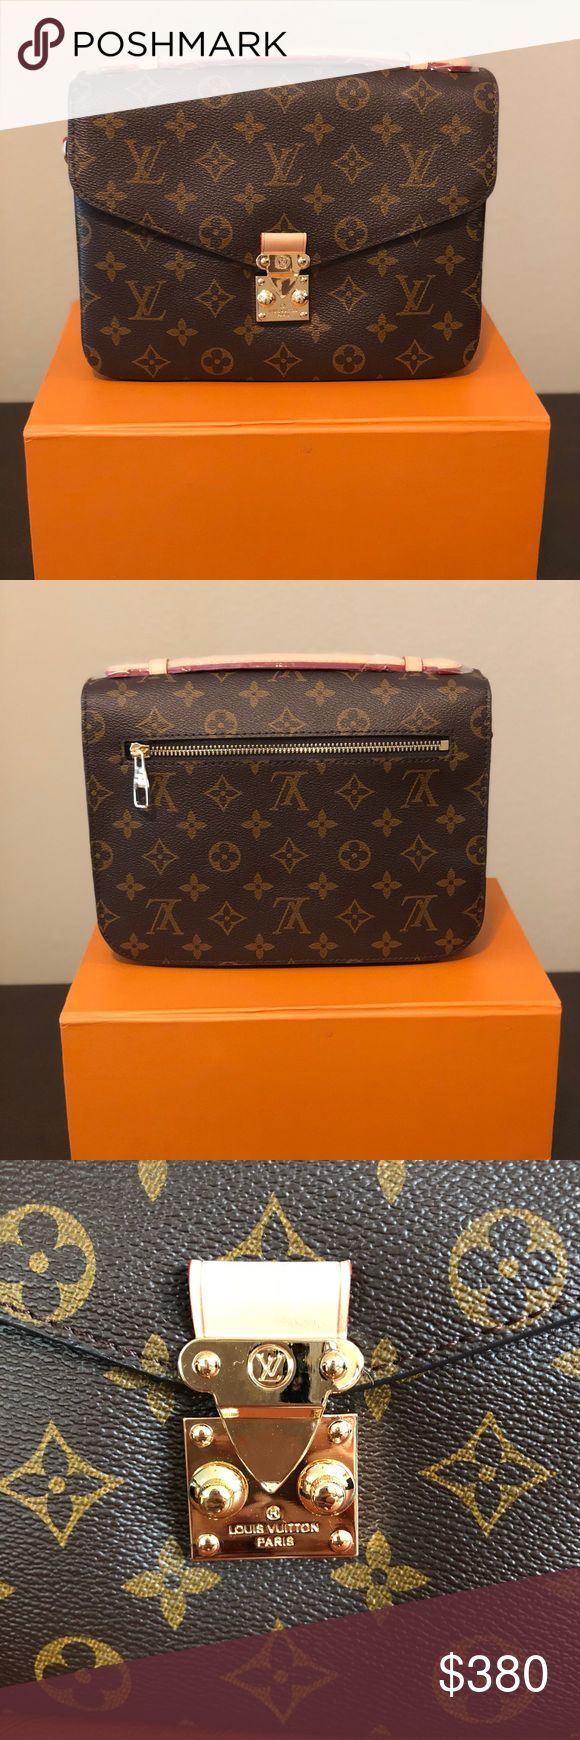 New bag Brand new crossbody bag. Last one. Excellent quality. Comes with box and dust bag. Soft leather. Please pay close attention to the price, authentic one is way more expensive.  Offers welcome, no trade. Louis Vuitton Bags Crossbody Bags